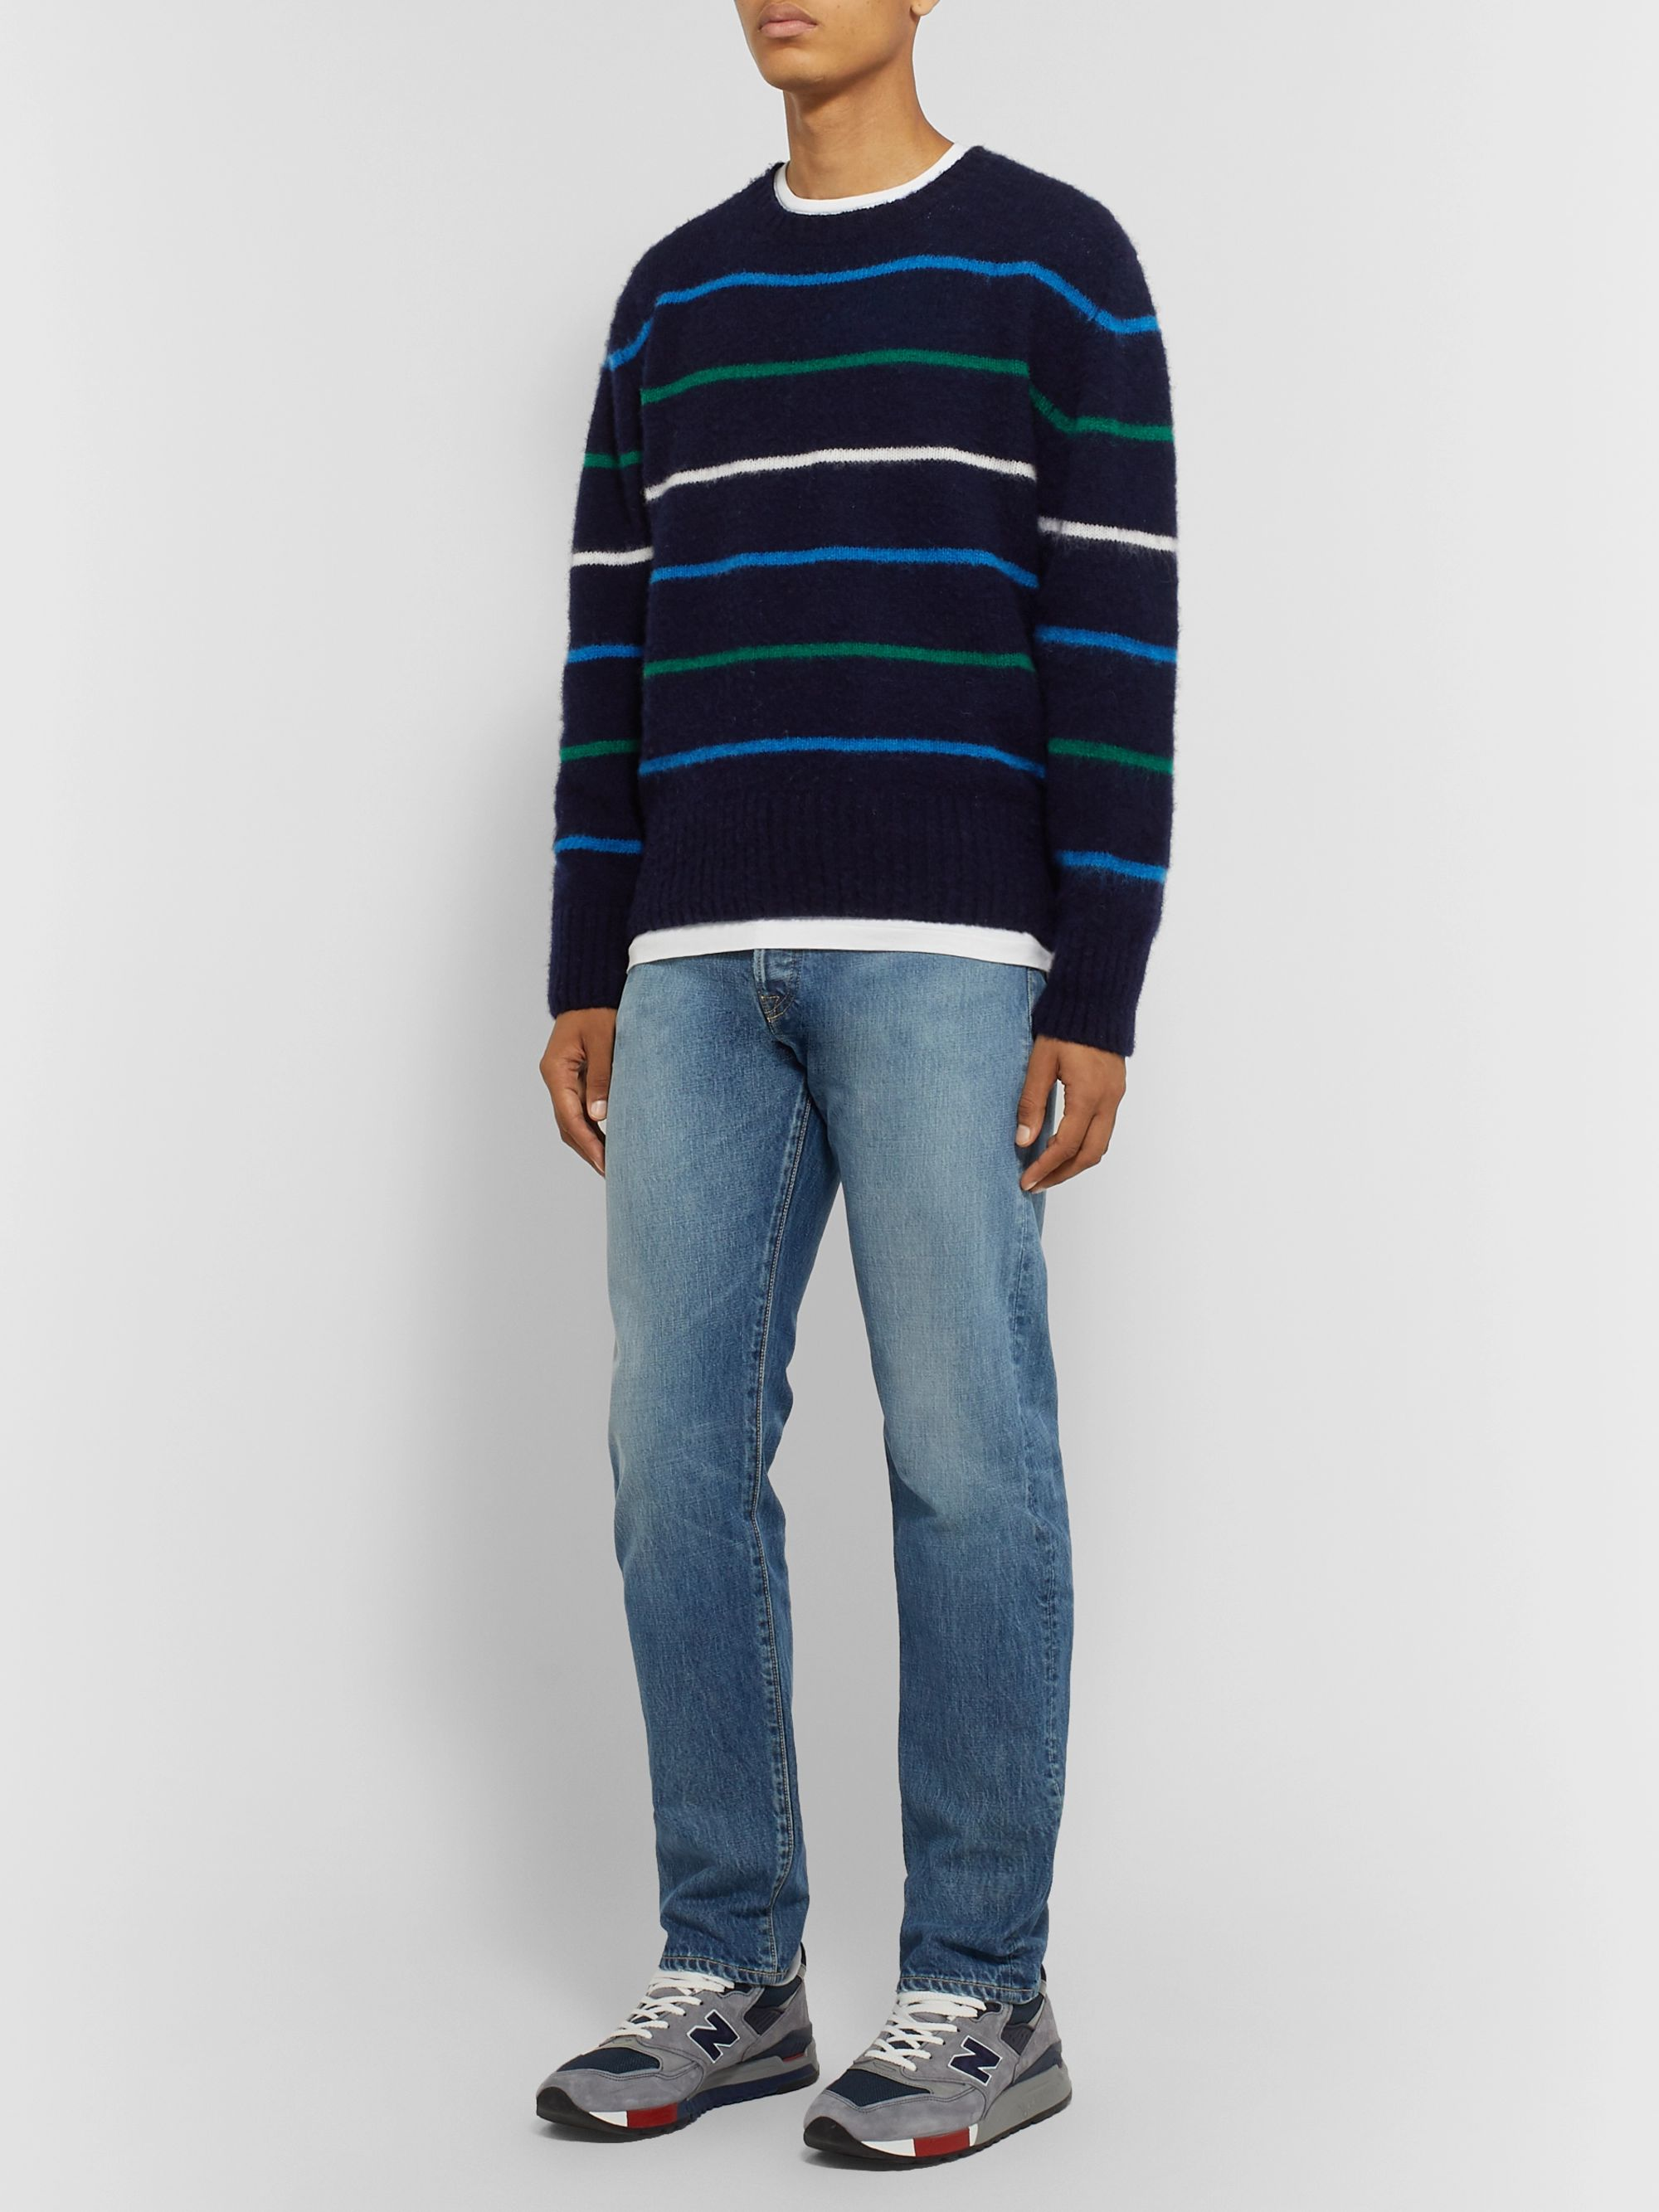 J.Press Striped Wool Sweater